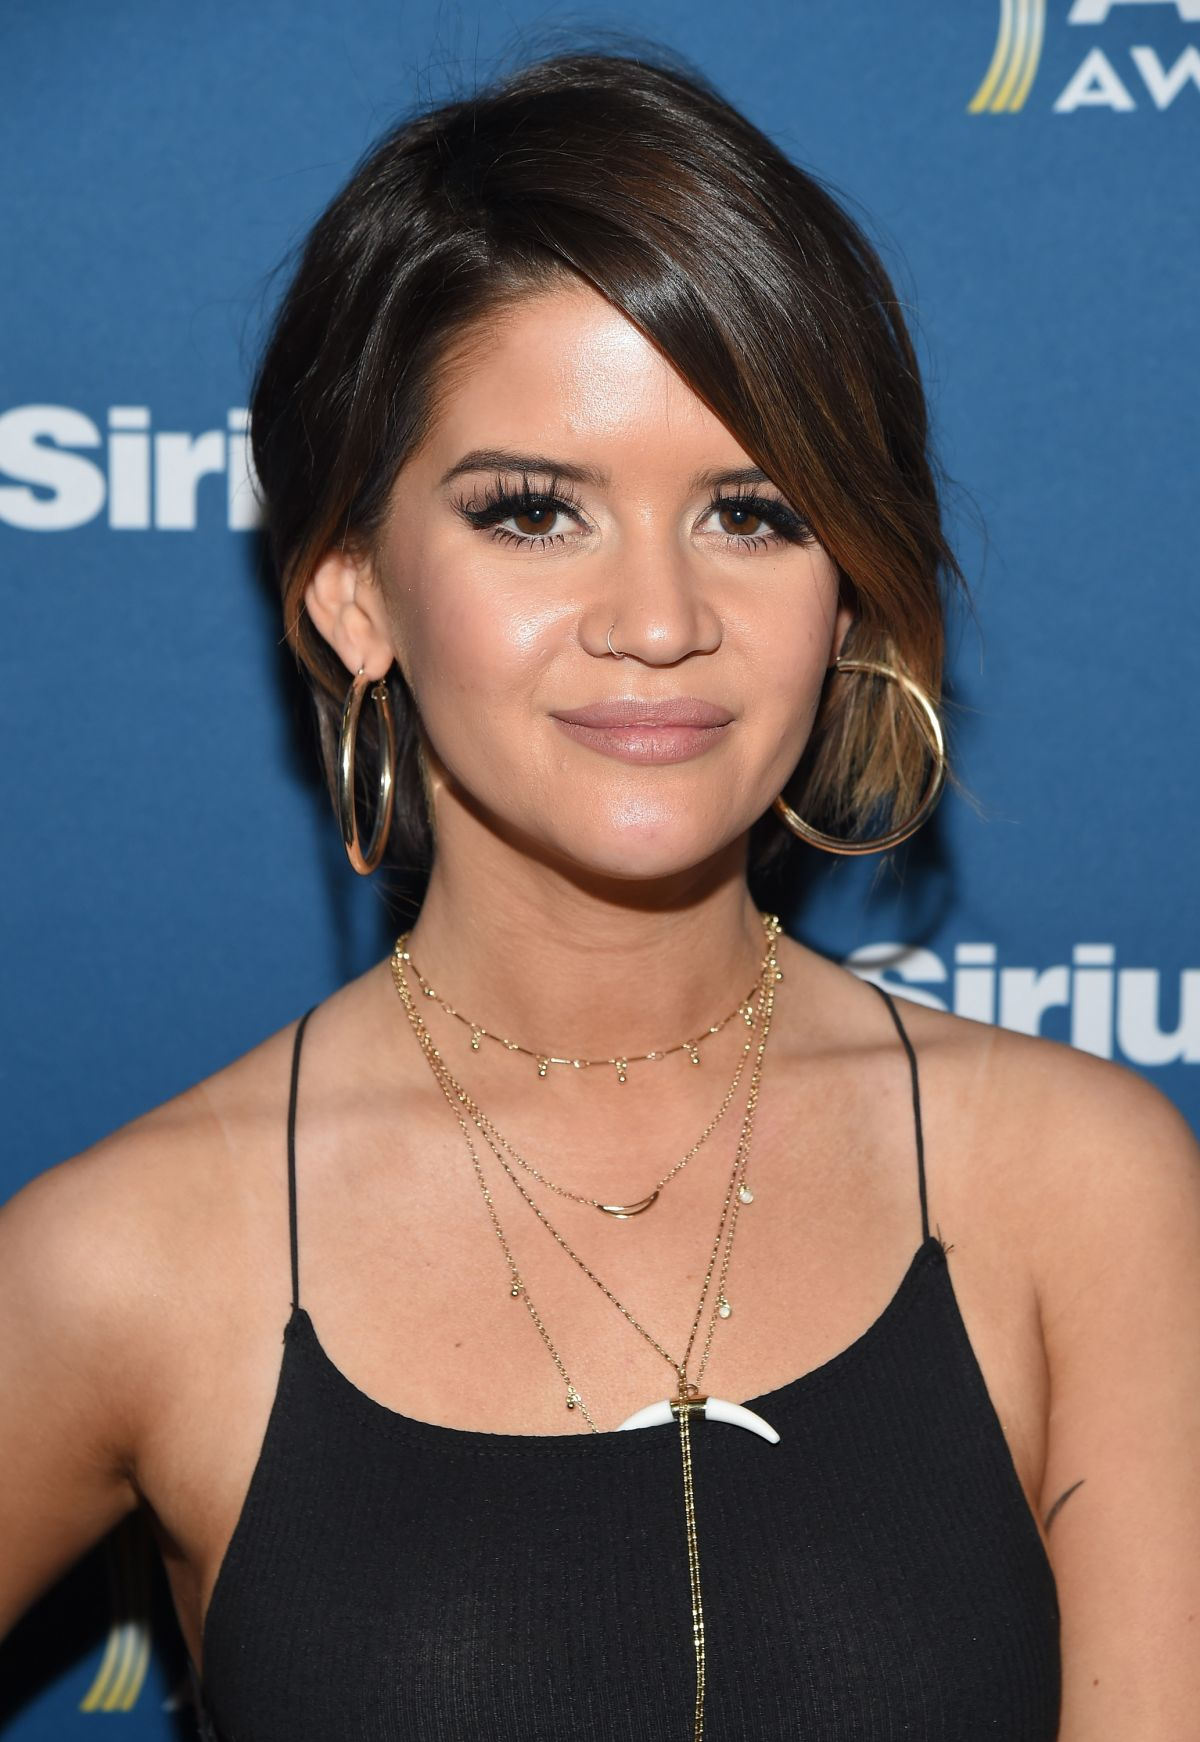 MAREN MORRIS at Highway Channel Broadcasts Backstage at T-Mobile Arena in Las Vegas 03/31/2017